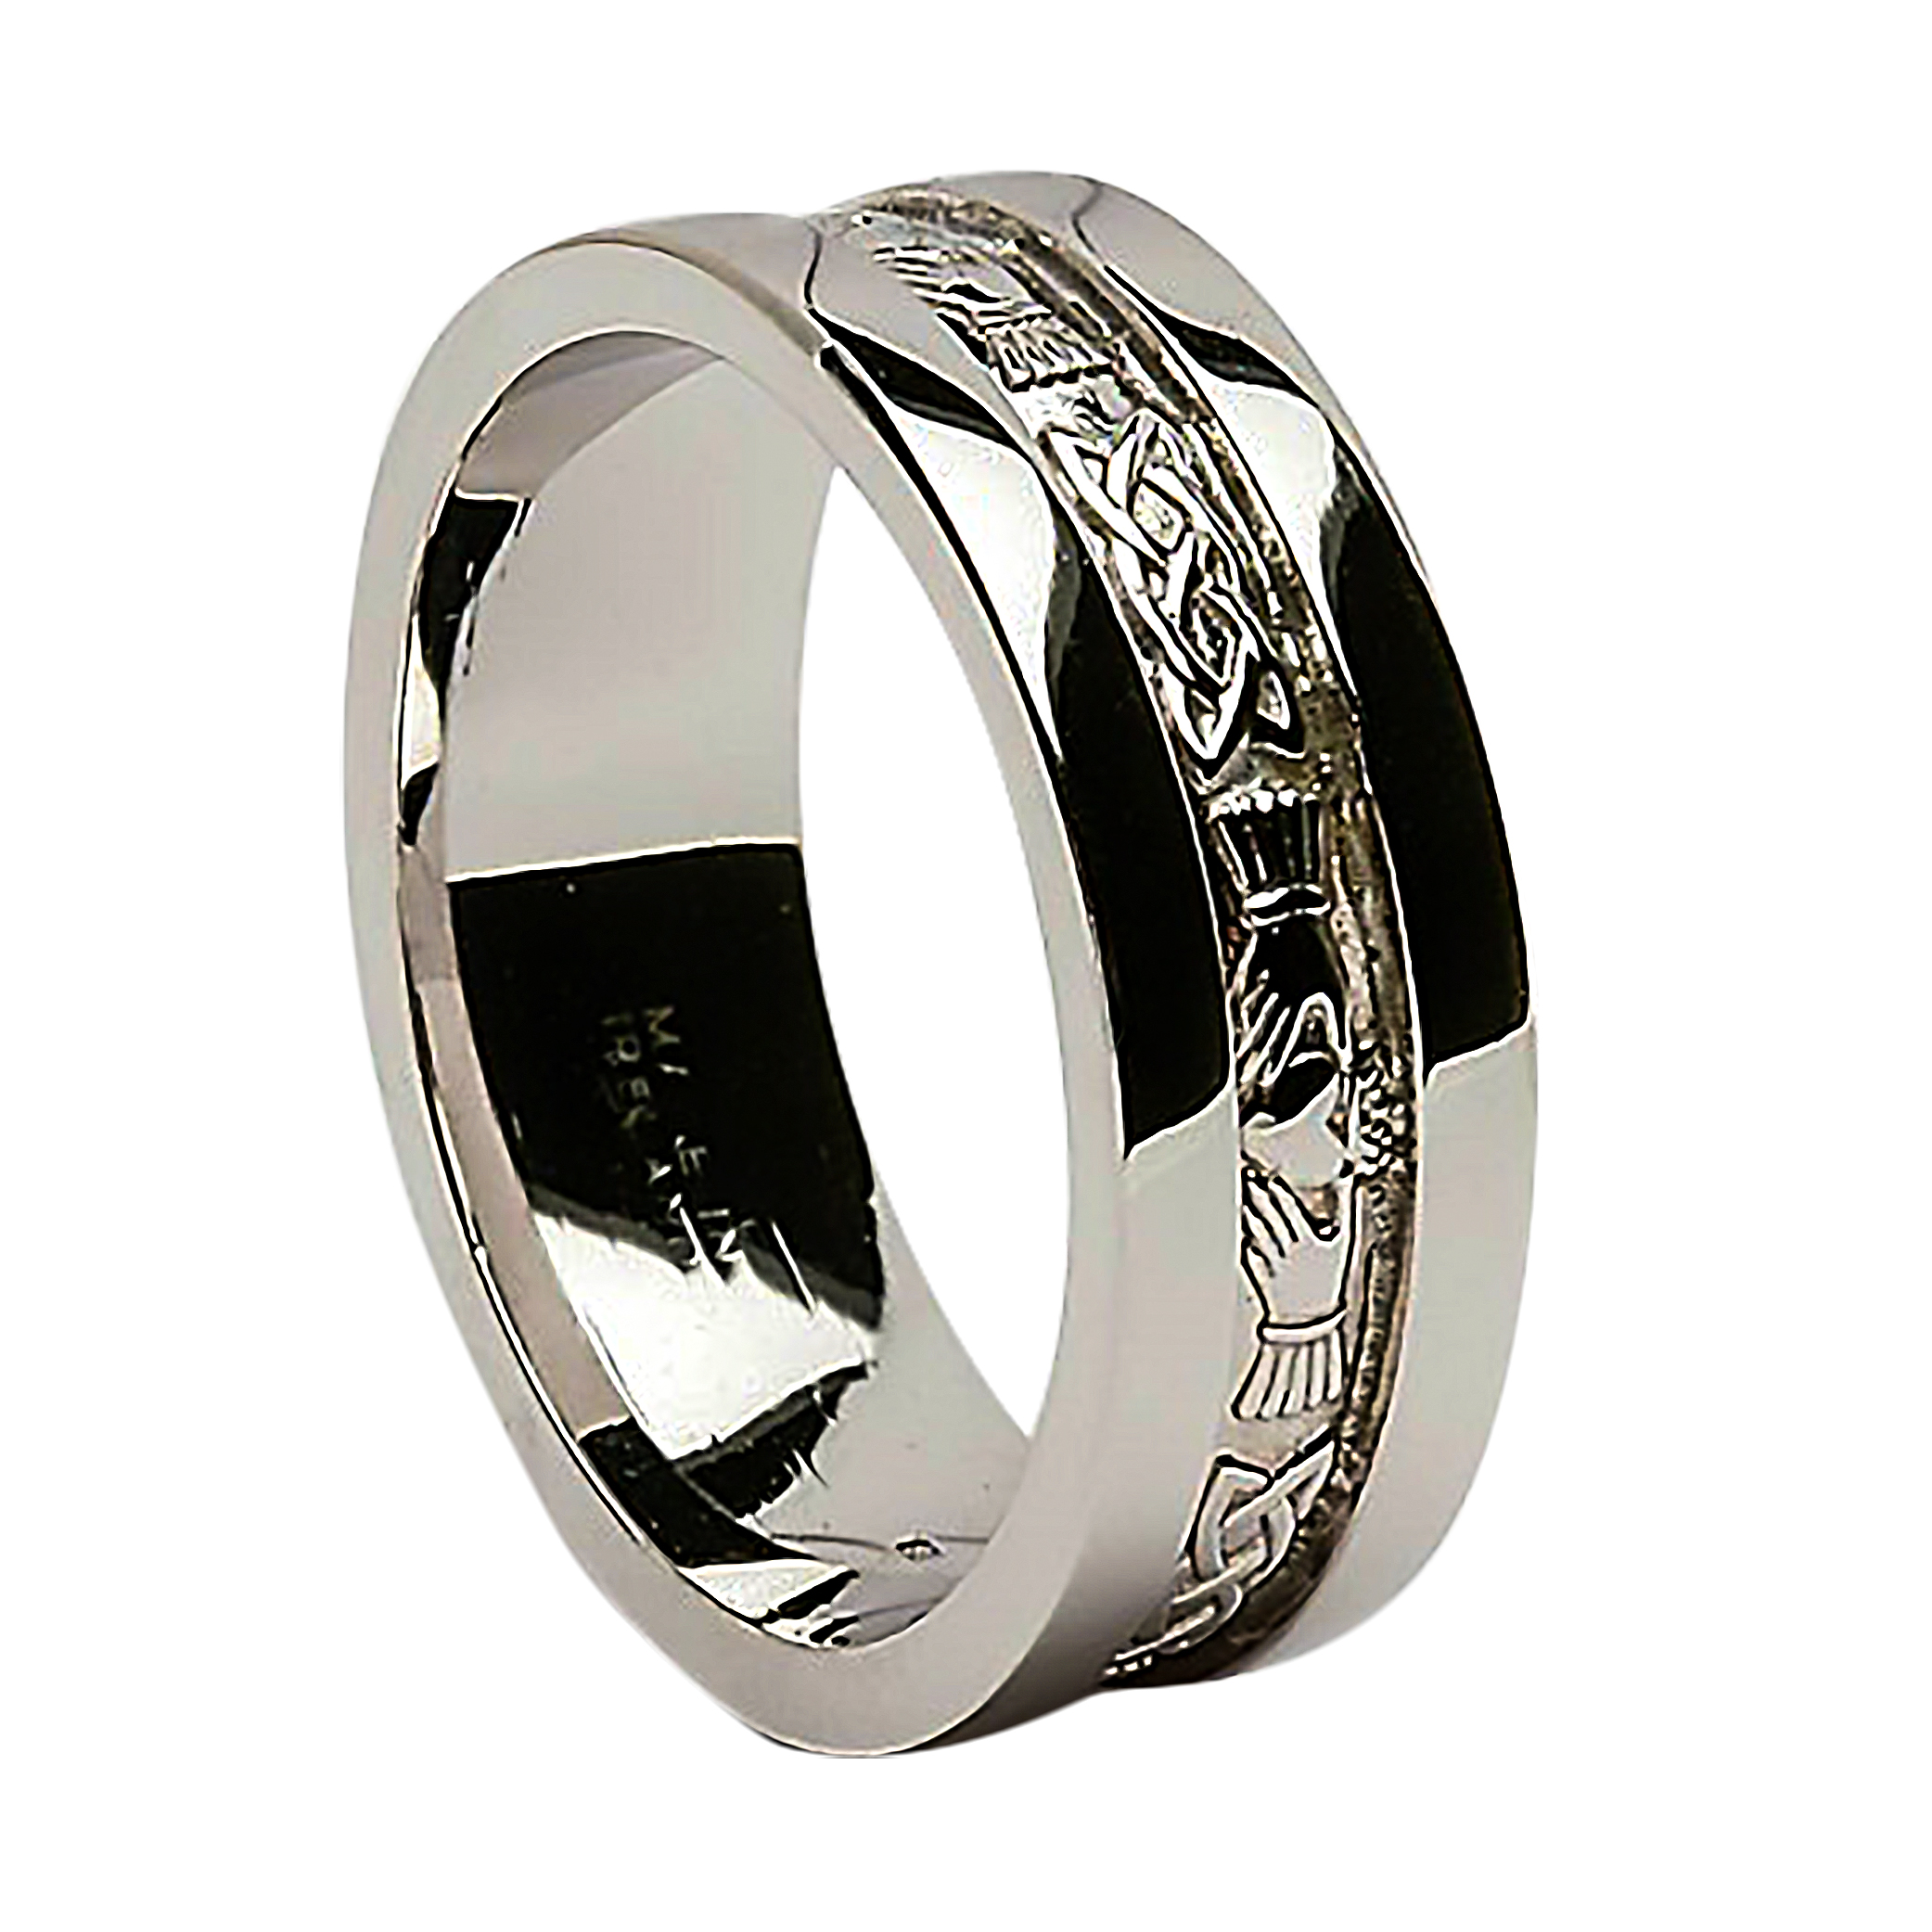 gemvara a gaelic bands match engagement set matching rings true l wedding